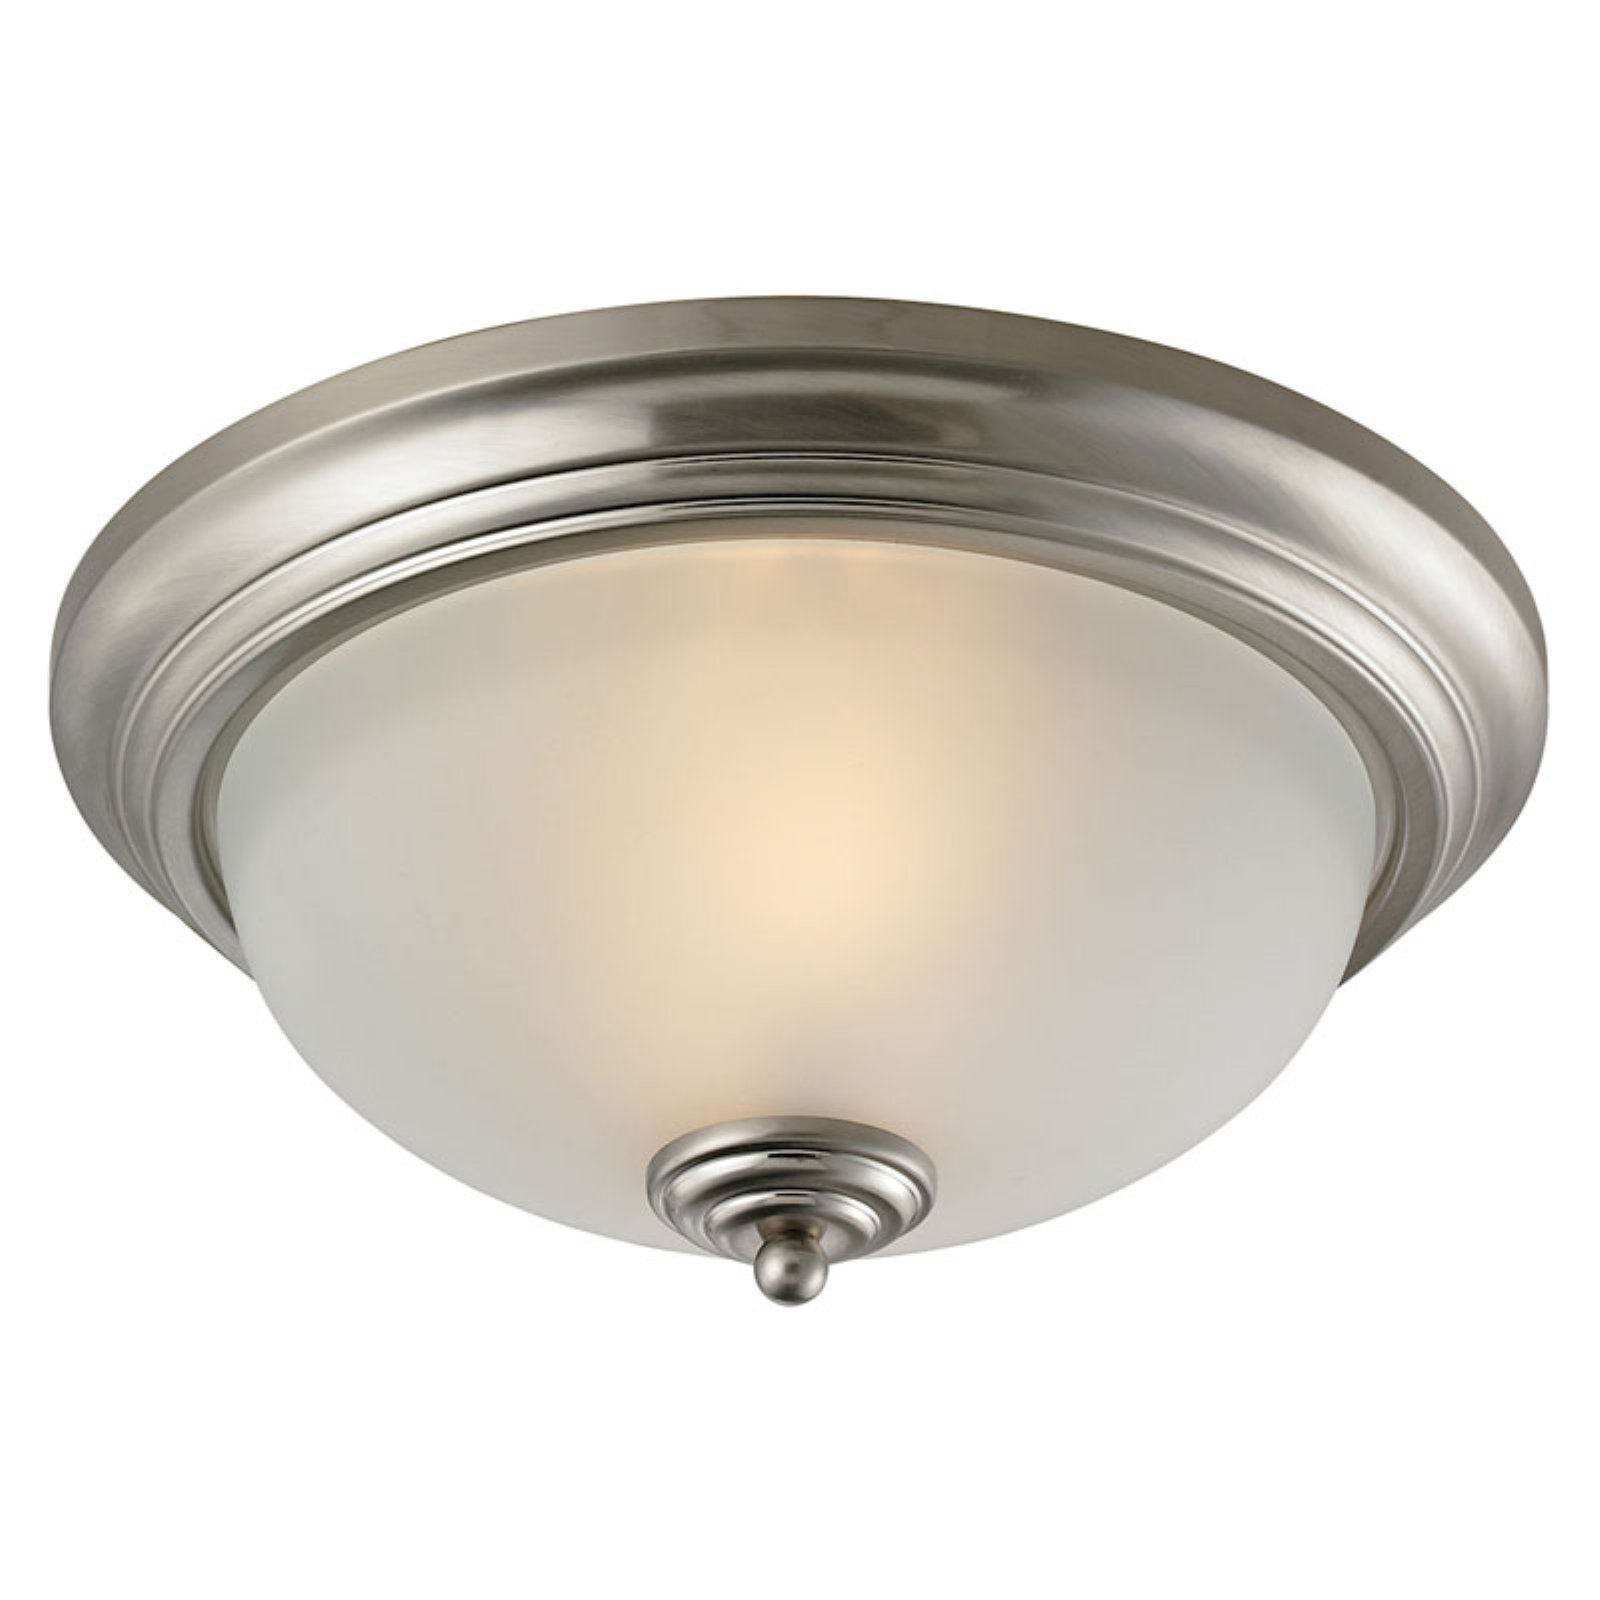 Thomas Lighting Huntington 7003FM 20 Flush Mount Light by Elk Group International